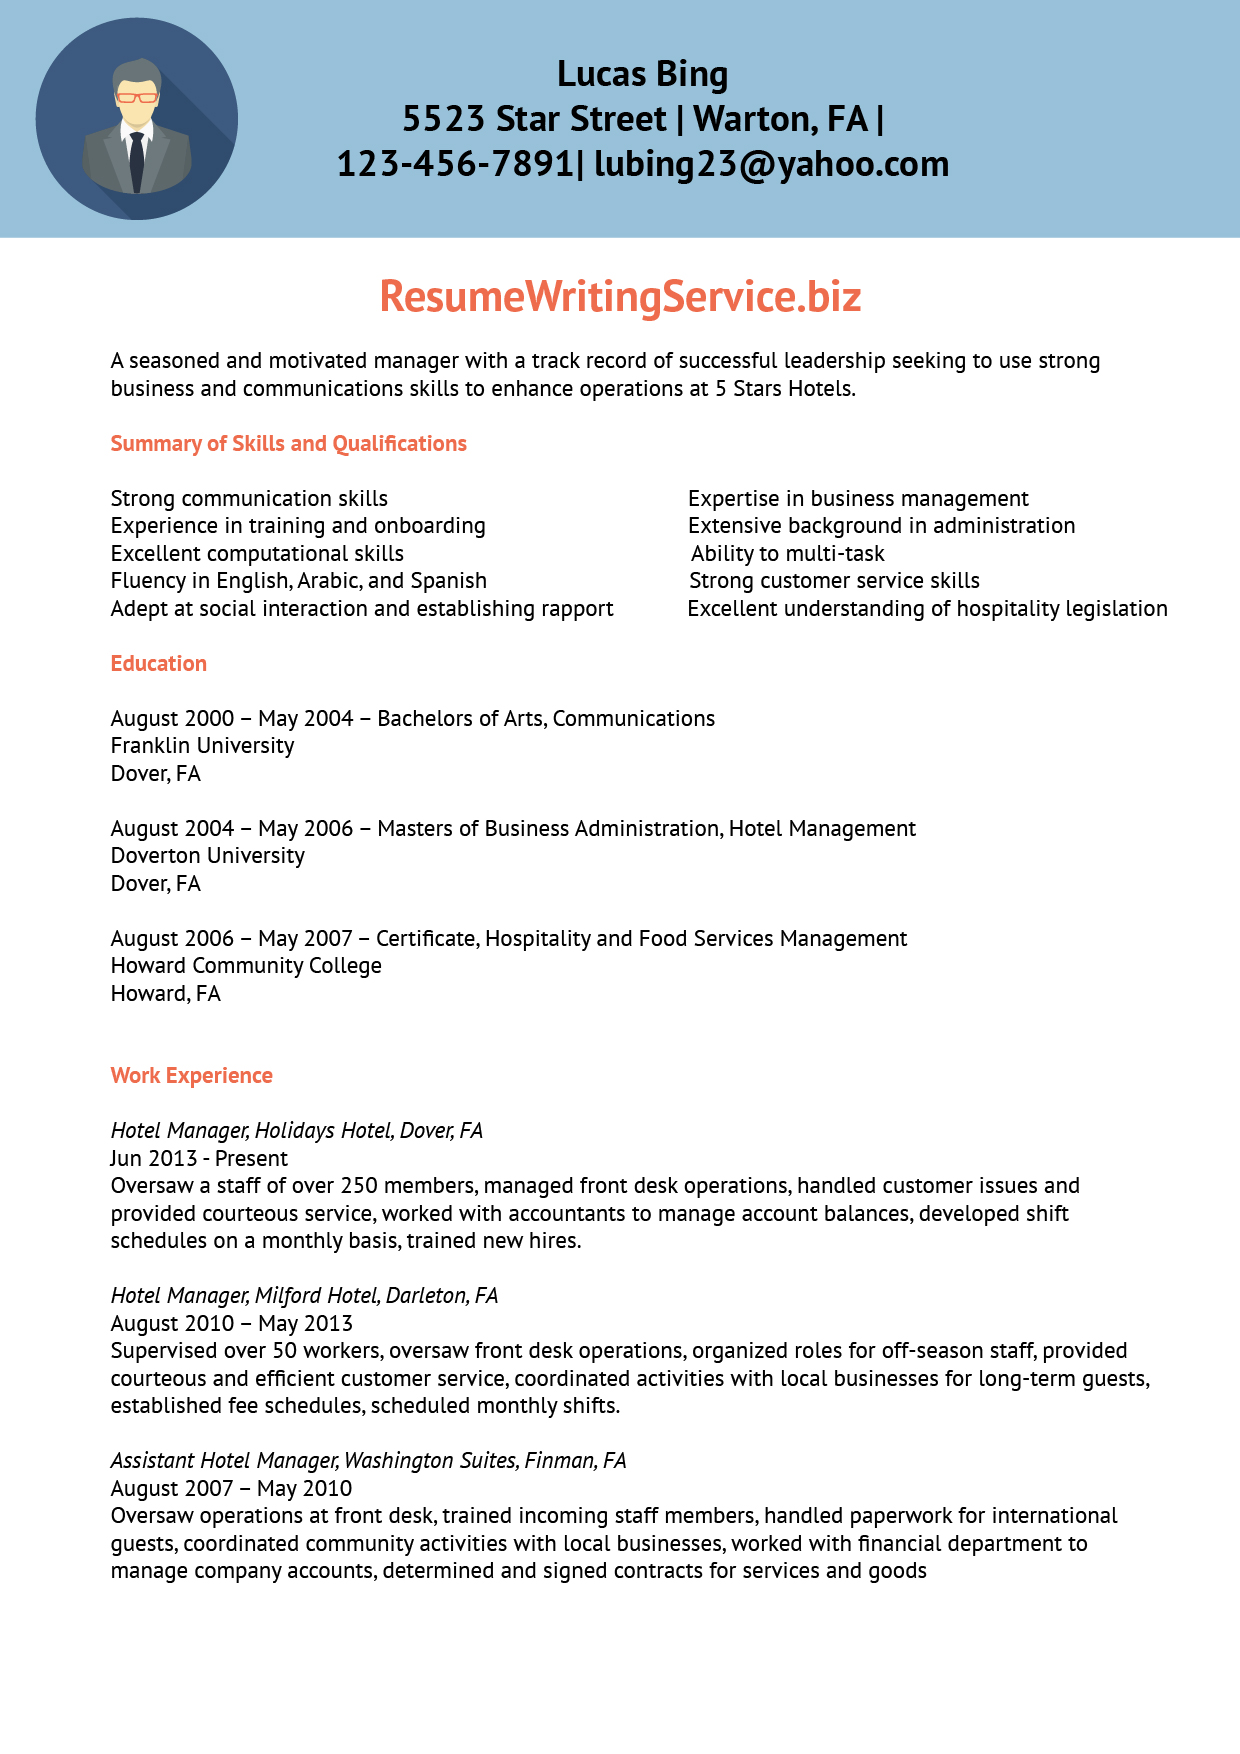 service resume Instantly create a job-winning resume resume-now's resume builder includes job-specific resume templates, resume examples and expert writing tips to help you get the job.